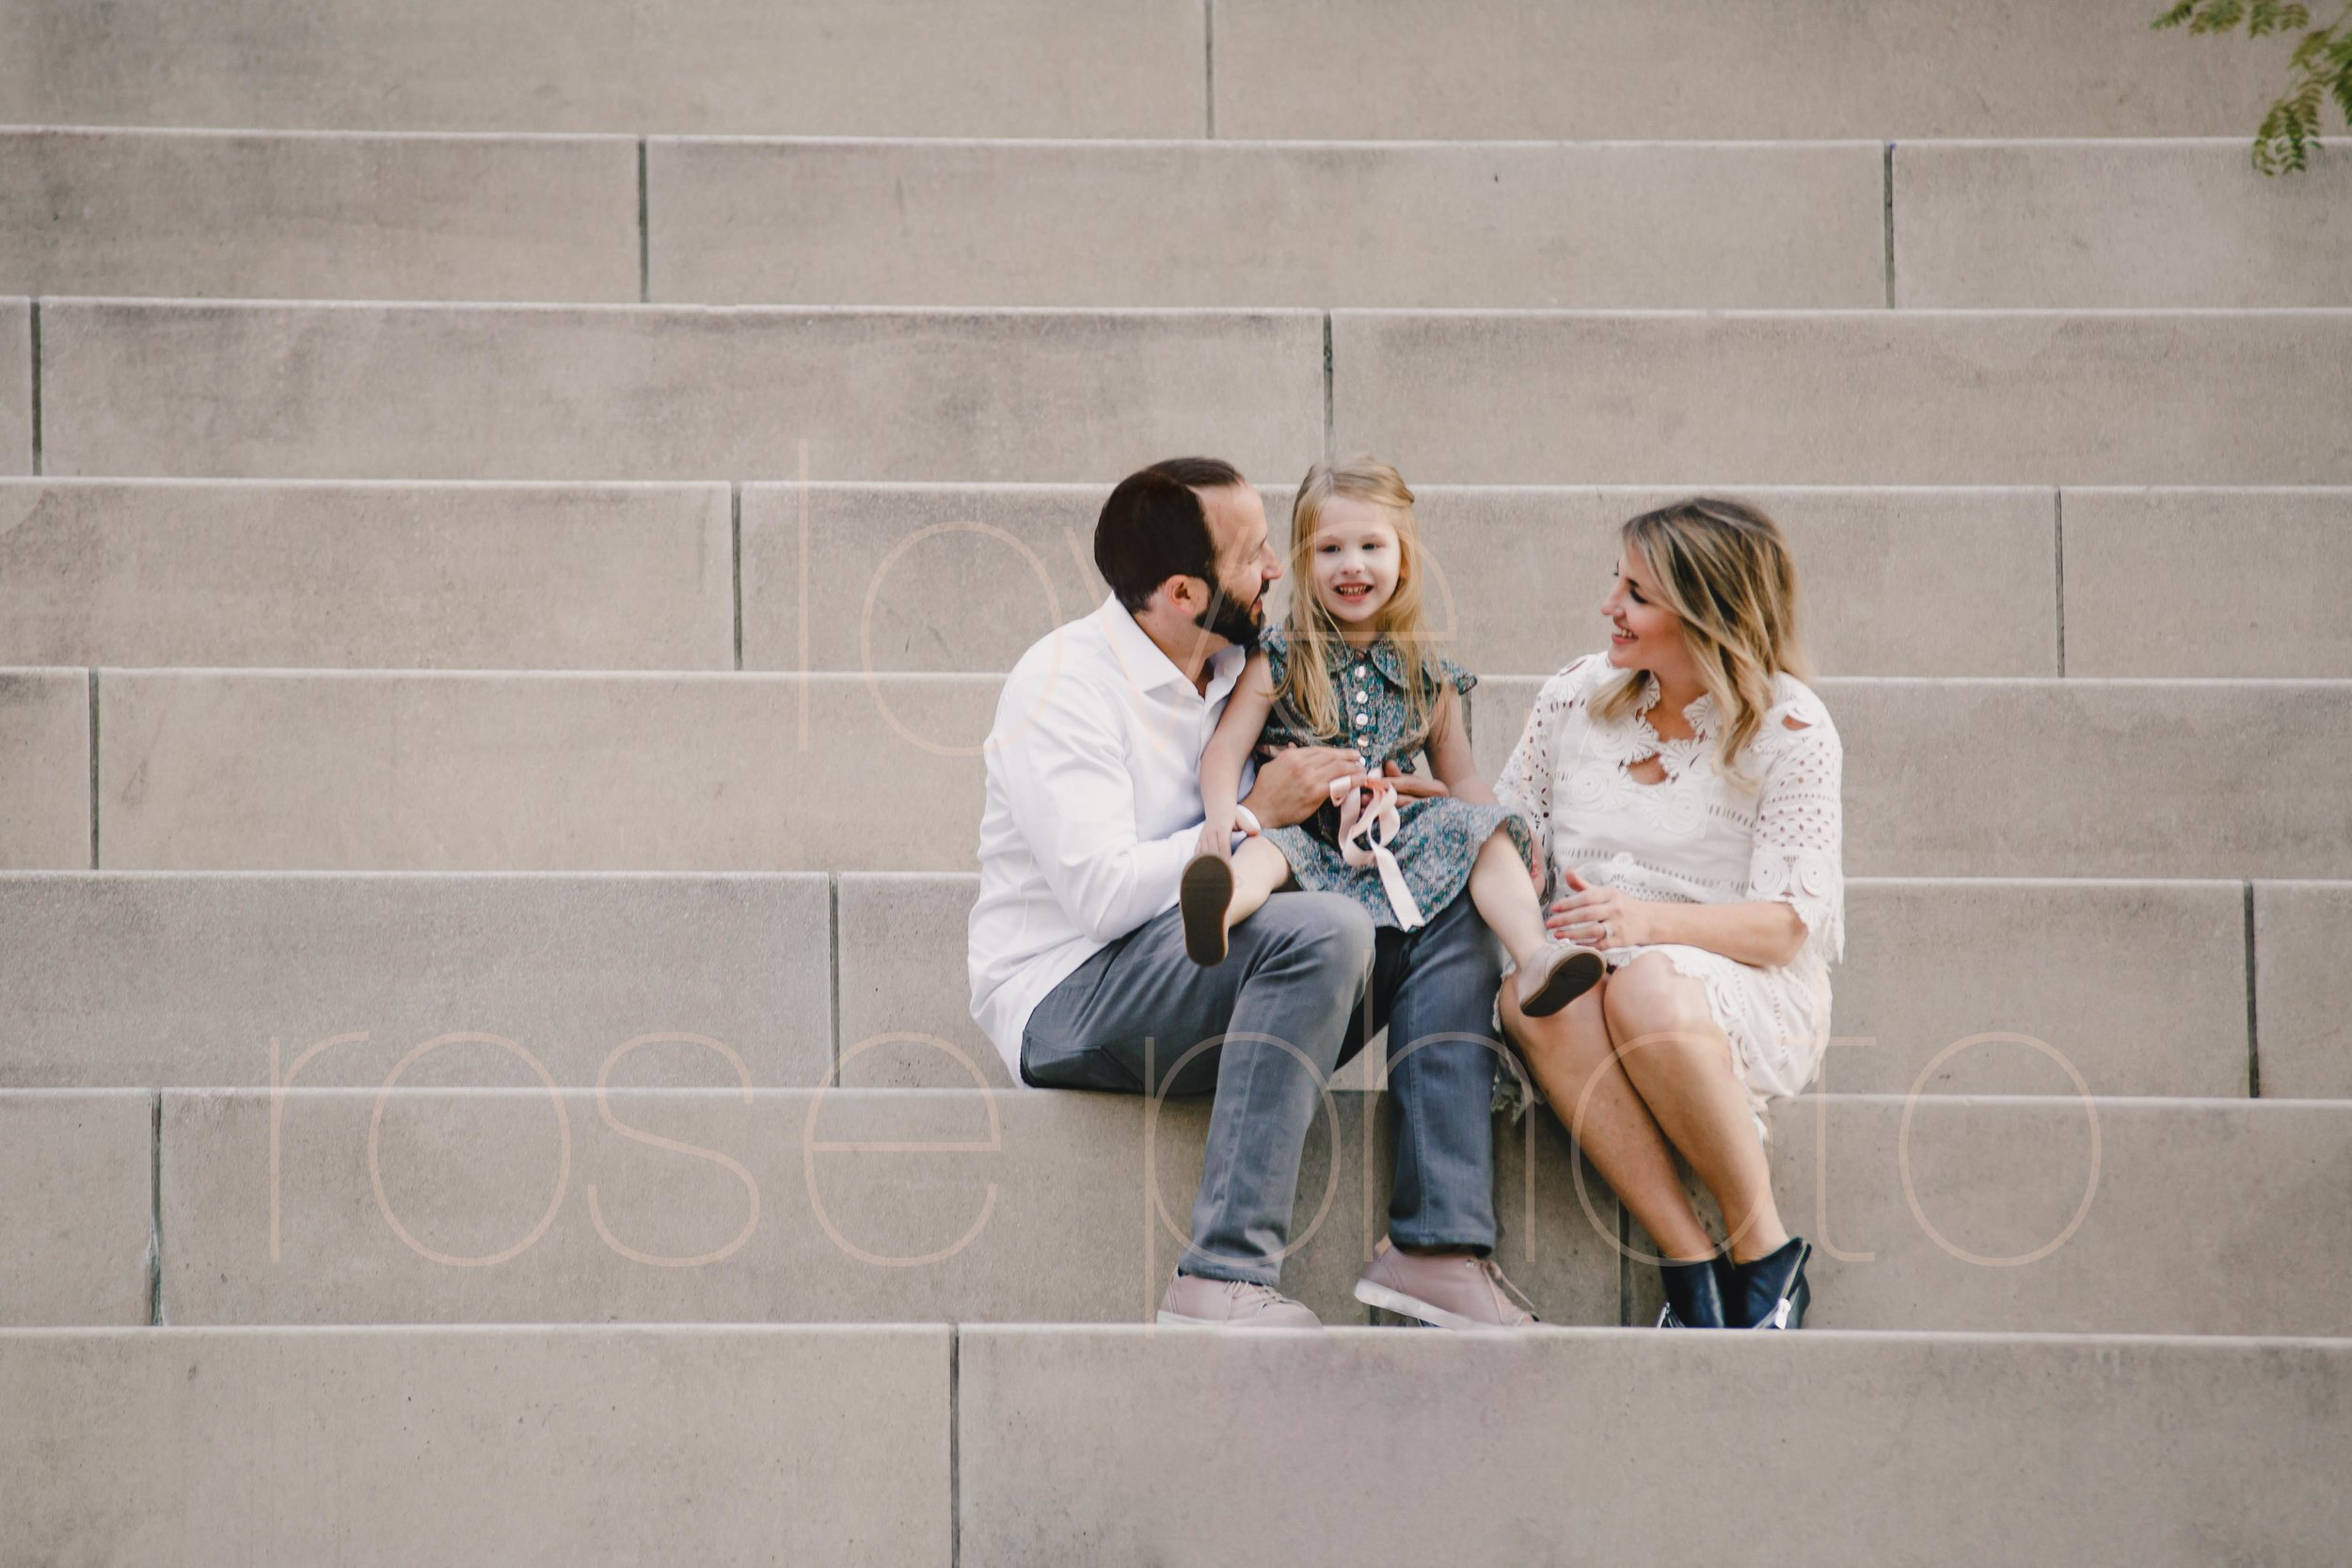 Lifestyle Photographer Chicago kids photos family shoot by Rose Photo -11.jpg